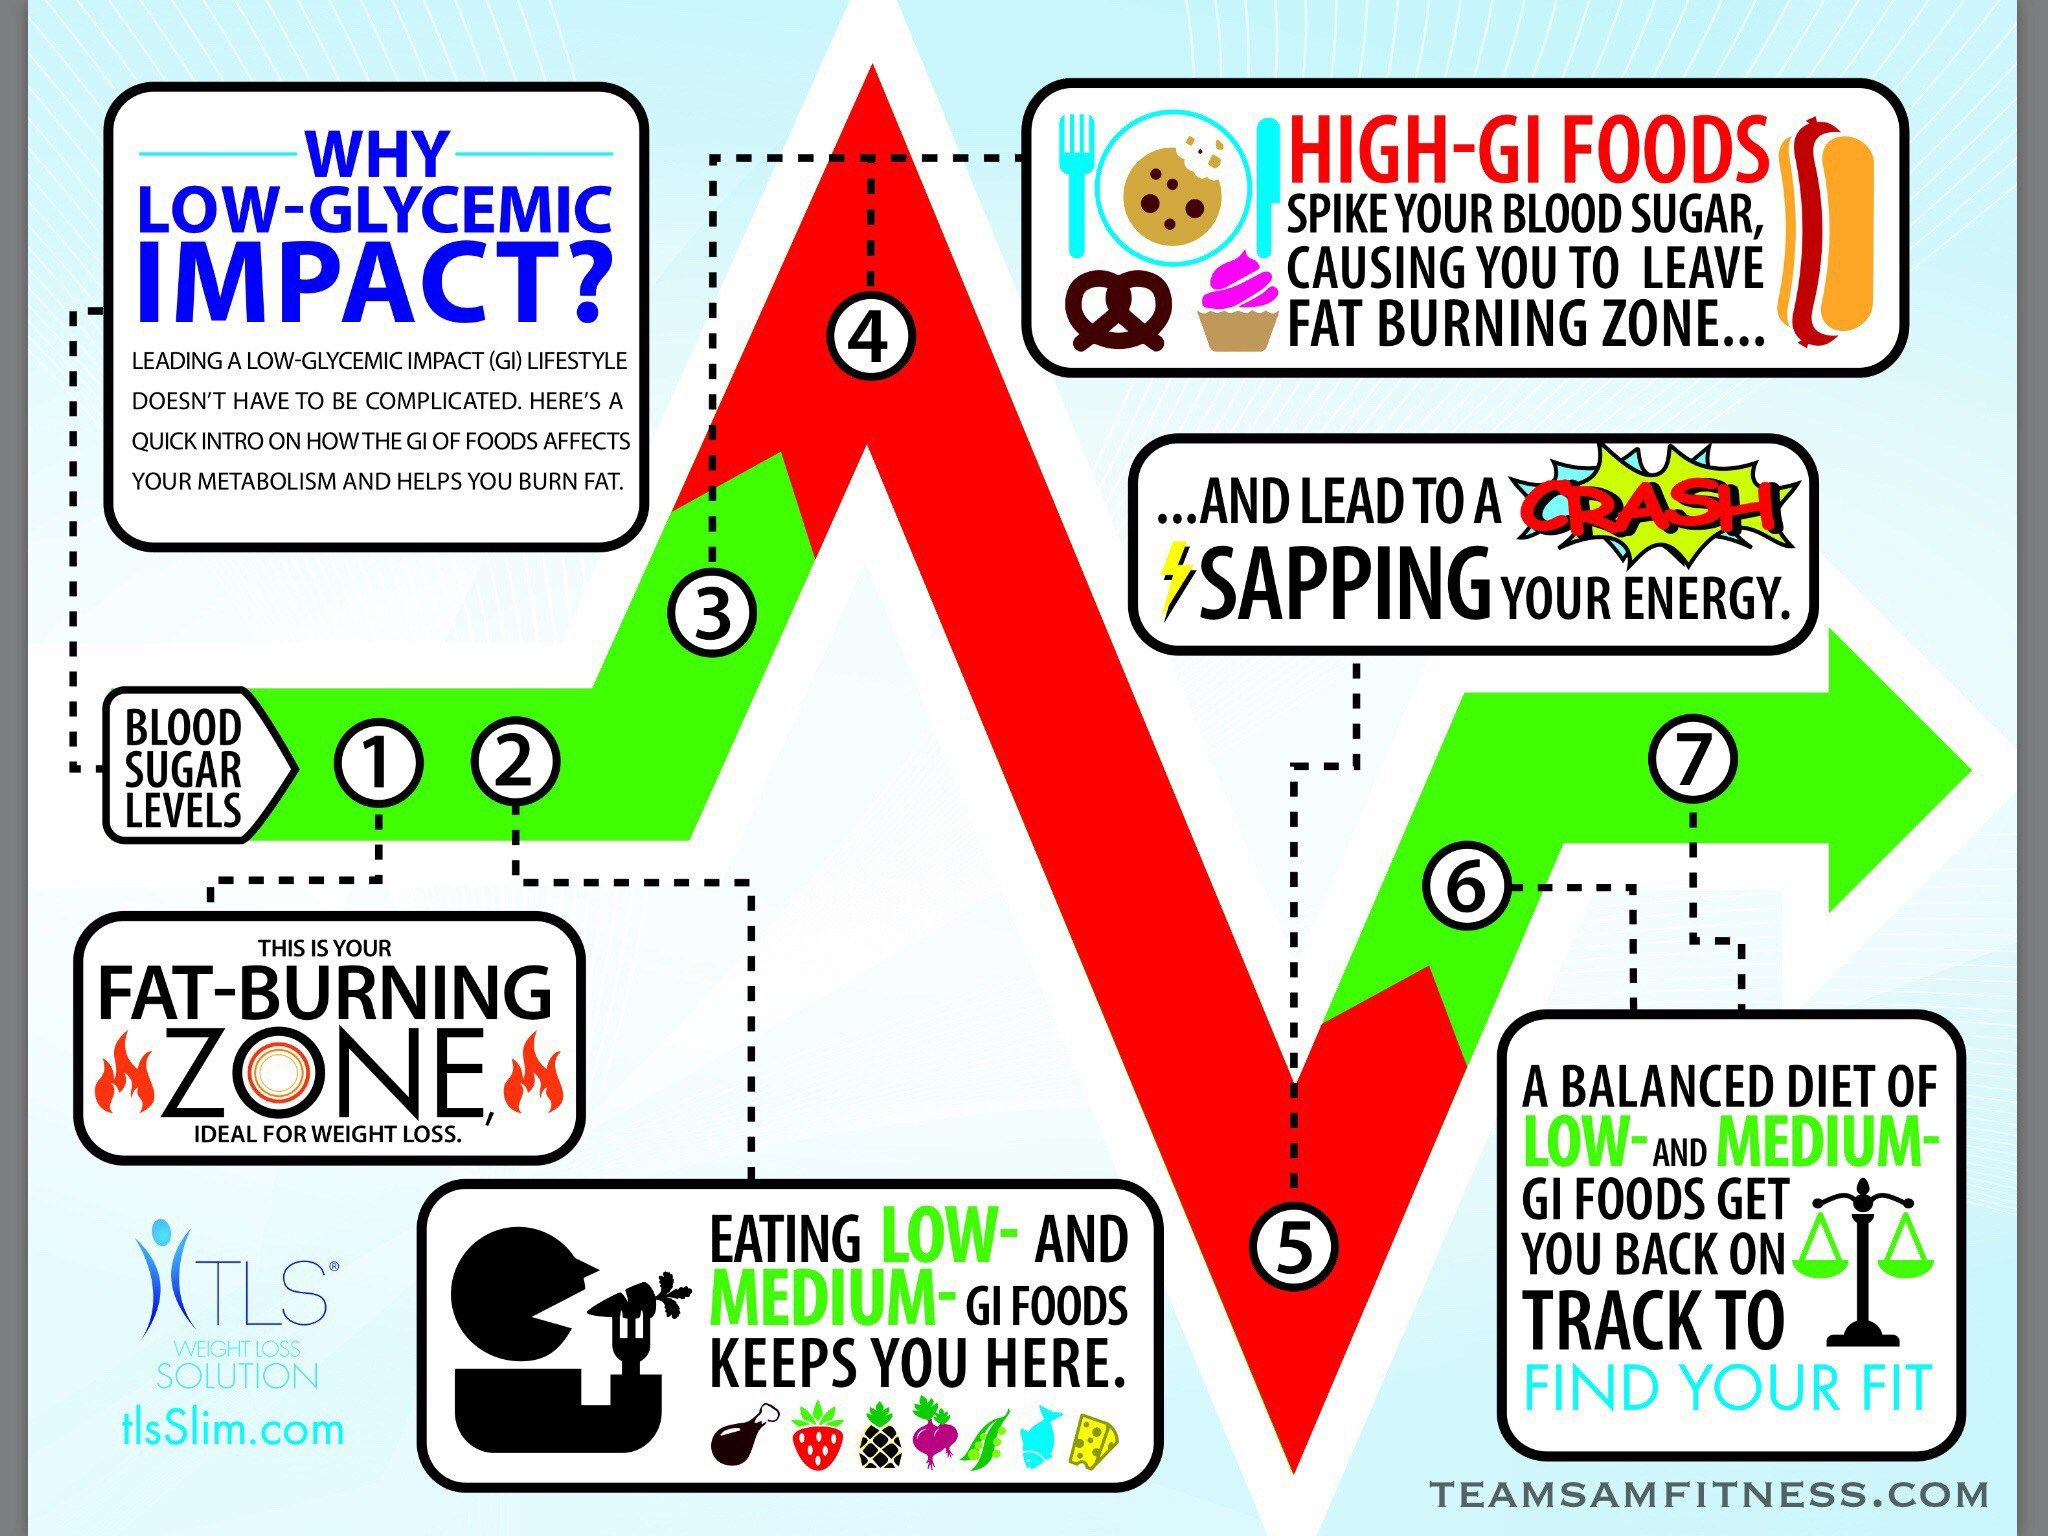 fat burning zone low glycemic impact eating tary facts